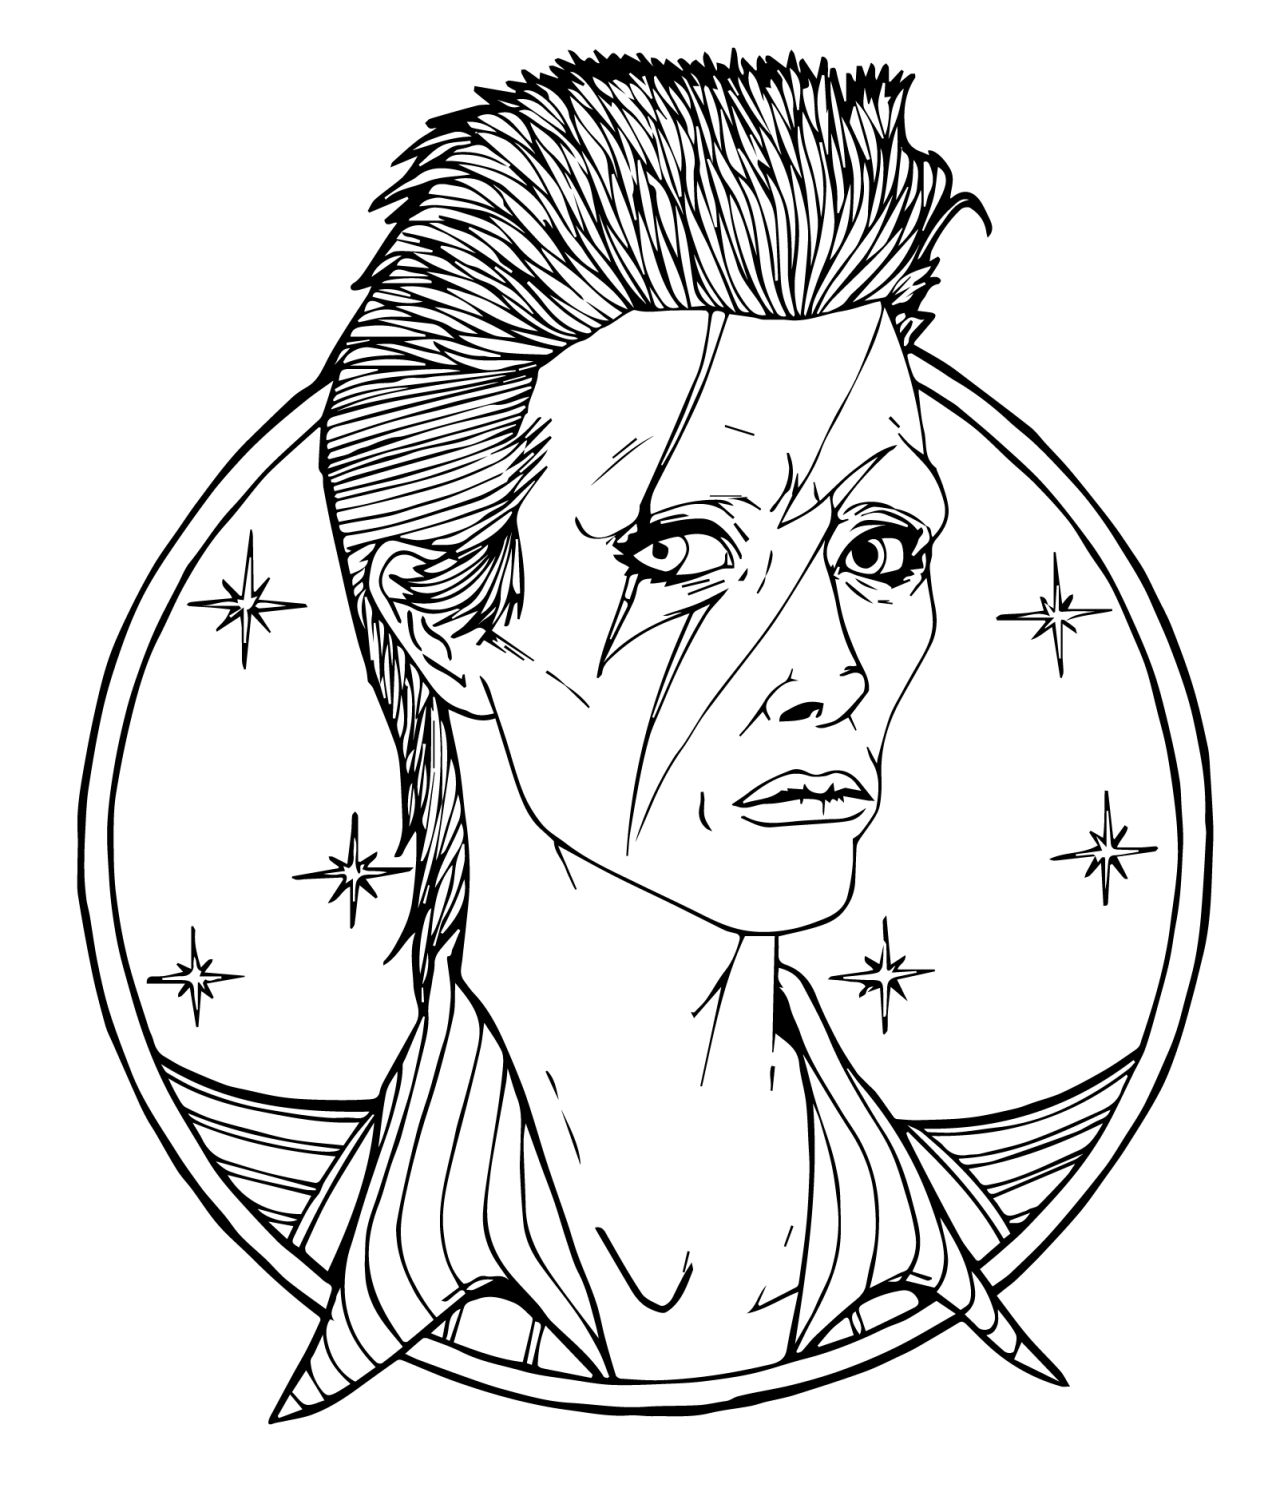 david bowie coloring page by artist